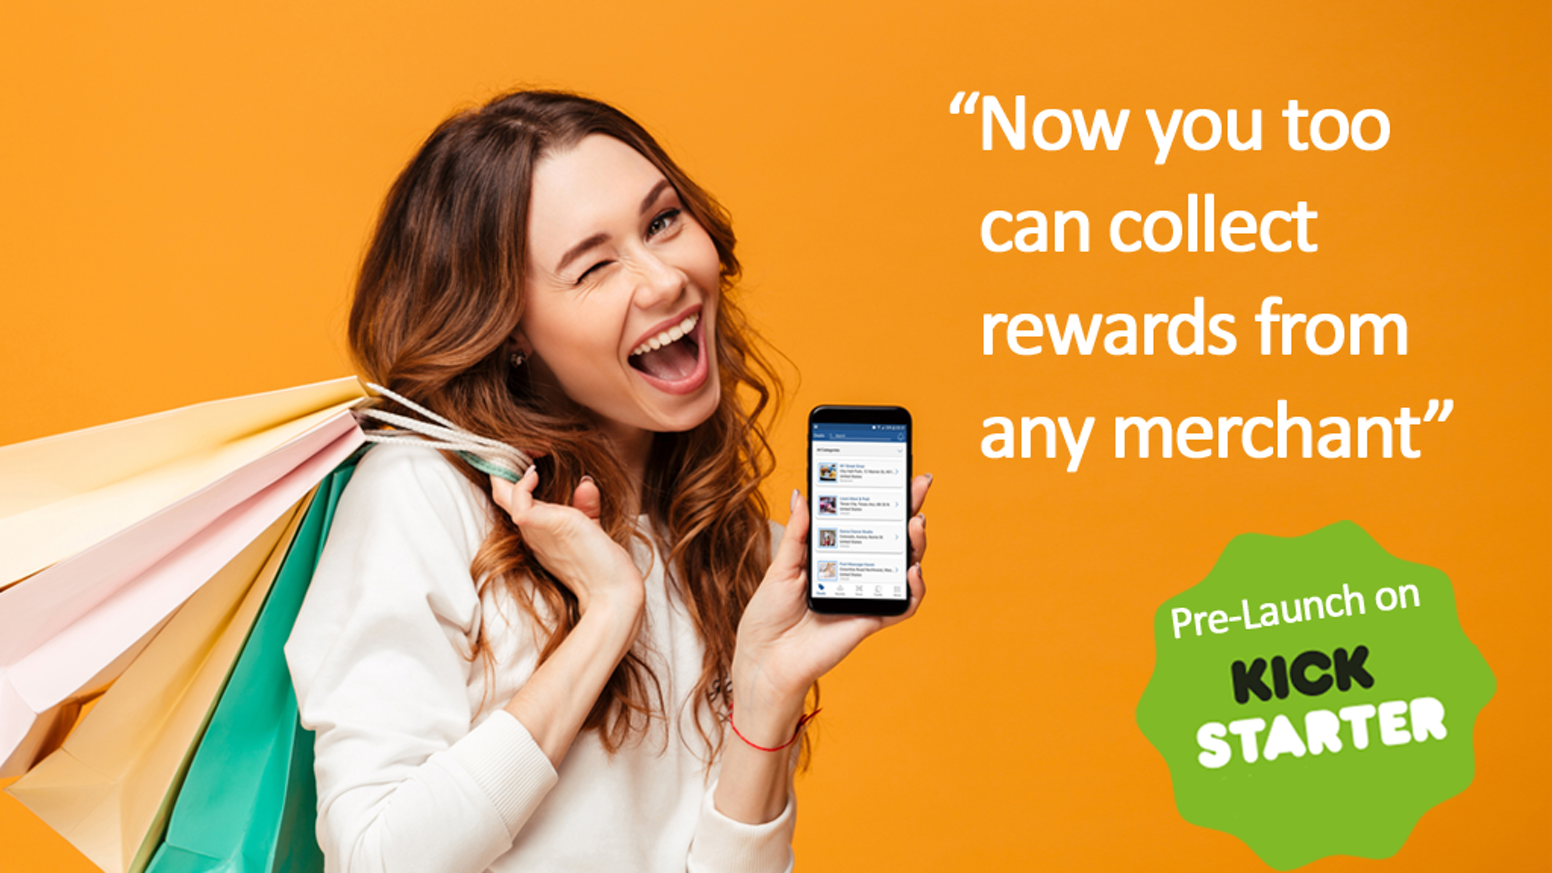 Circle K Rewards: QR Scanner Rewards App: Get Rewarded Everyday By